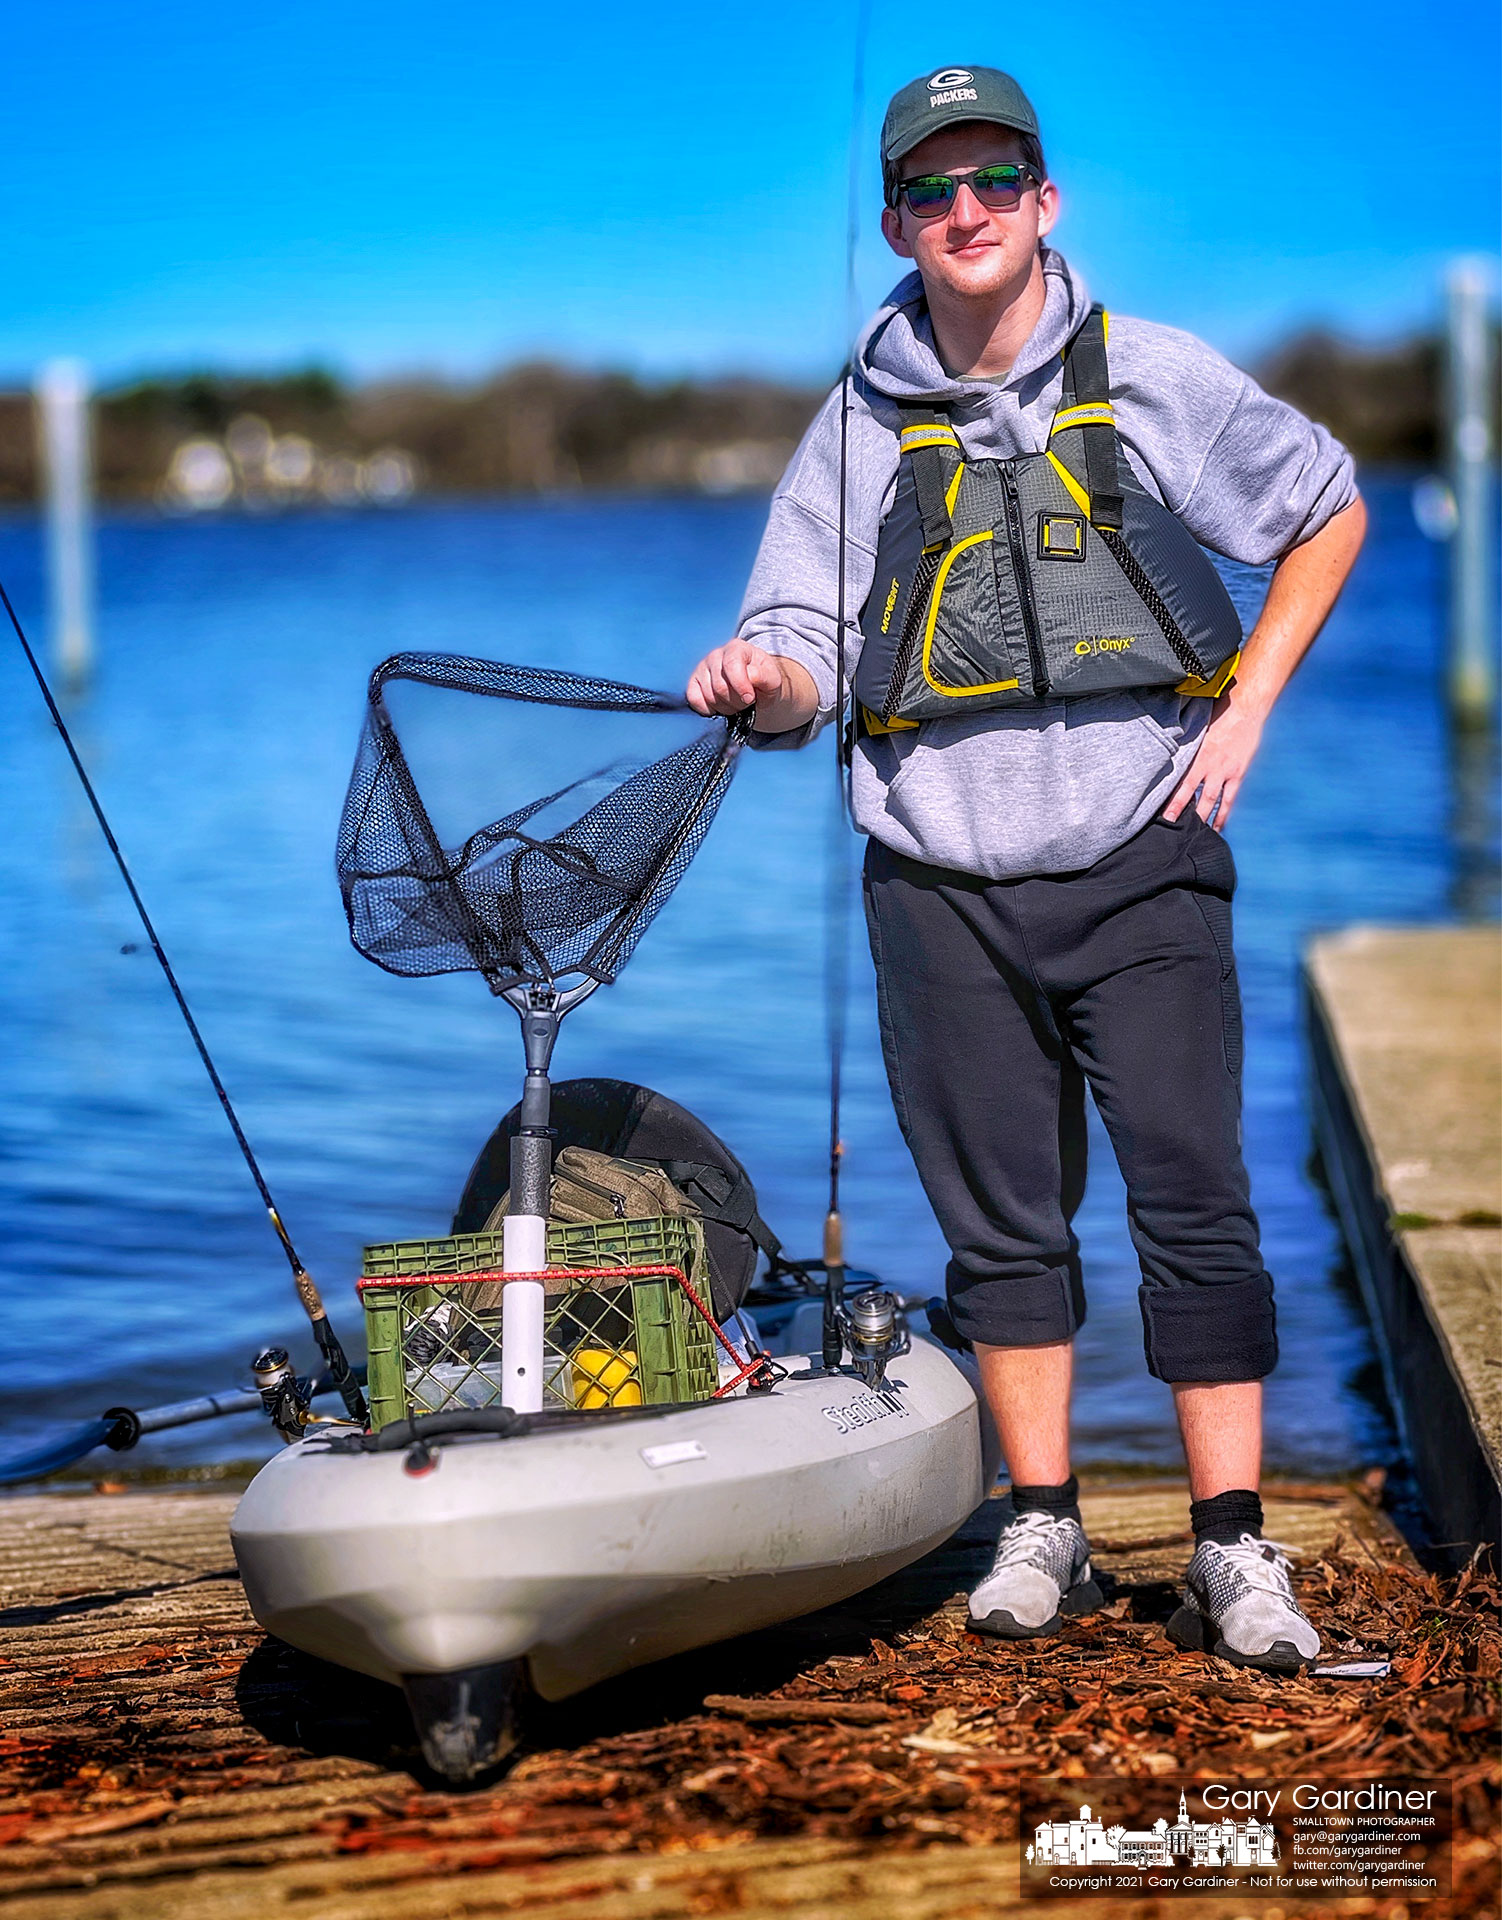 A fisherman poses for a quick photo before launching a borrowed boat on Hoover Reservoir for the first time. My Final Photo for March 27, 2021.